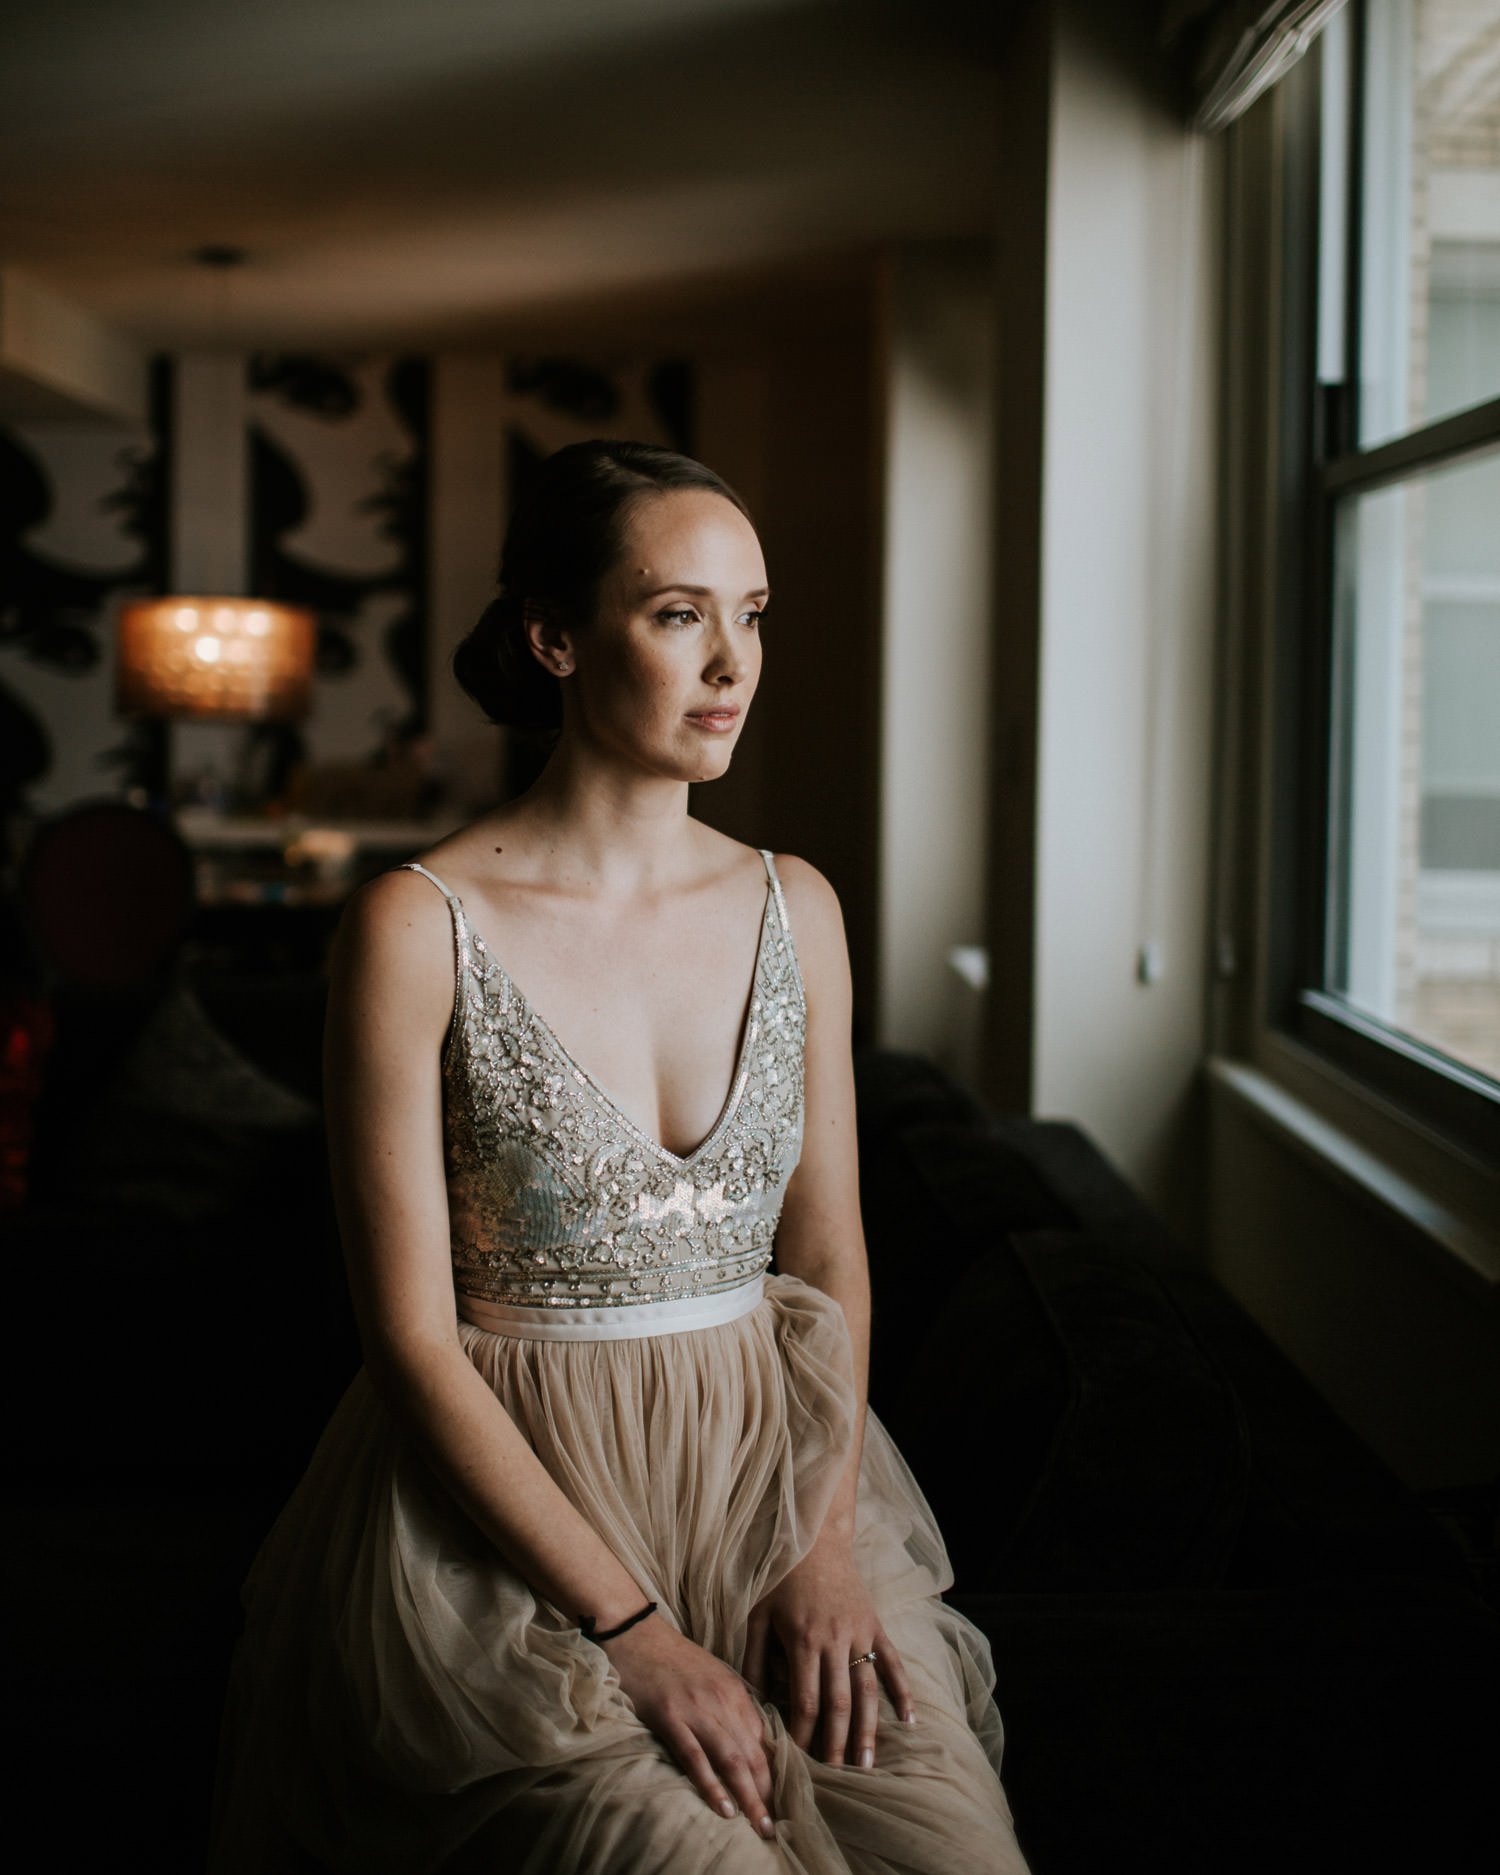 Bride in her BHLDN dress photographed by the window in Chicago hotel, moments before the first look